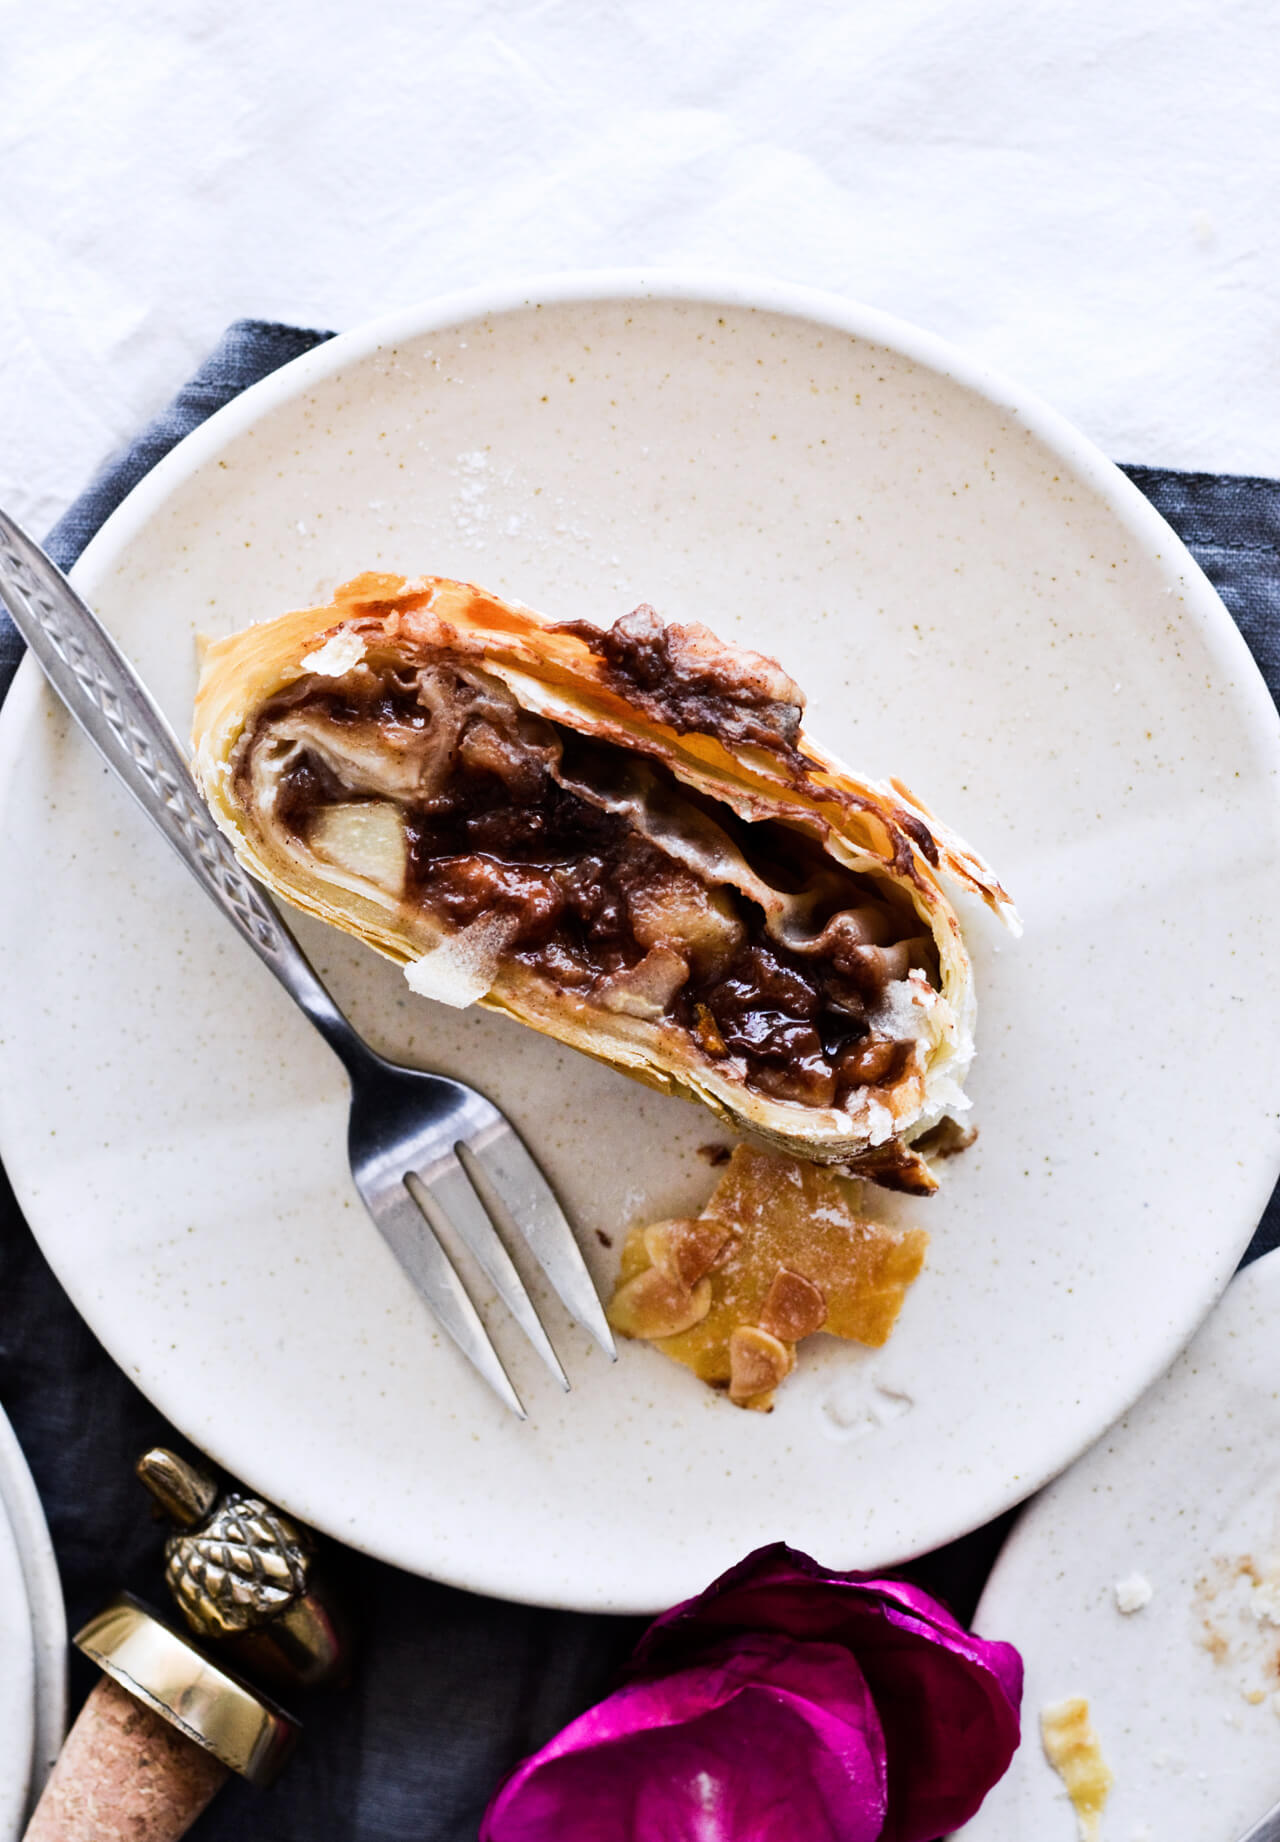 Easy chocolate pear strudel with cinnamon and almond flavor makes the perfect holiday dessert! Great warm or cold, made easily with phyllo pastry. Quick dessert!